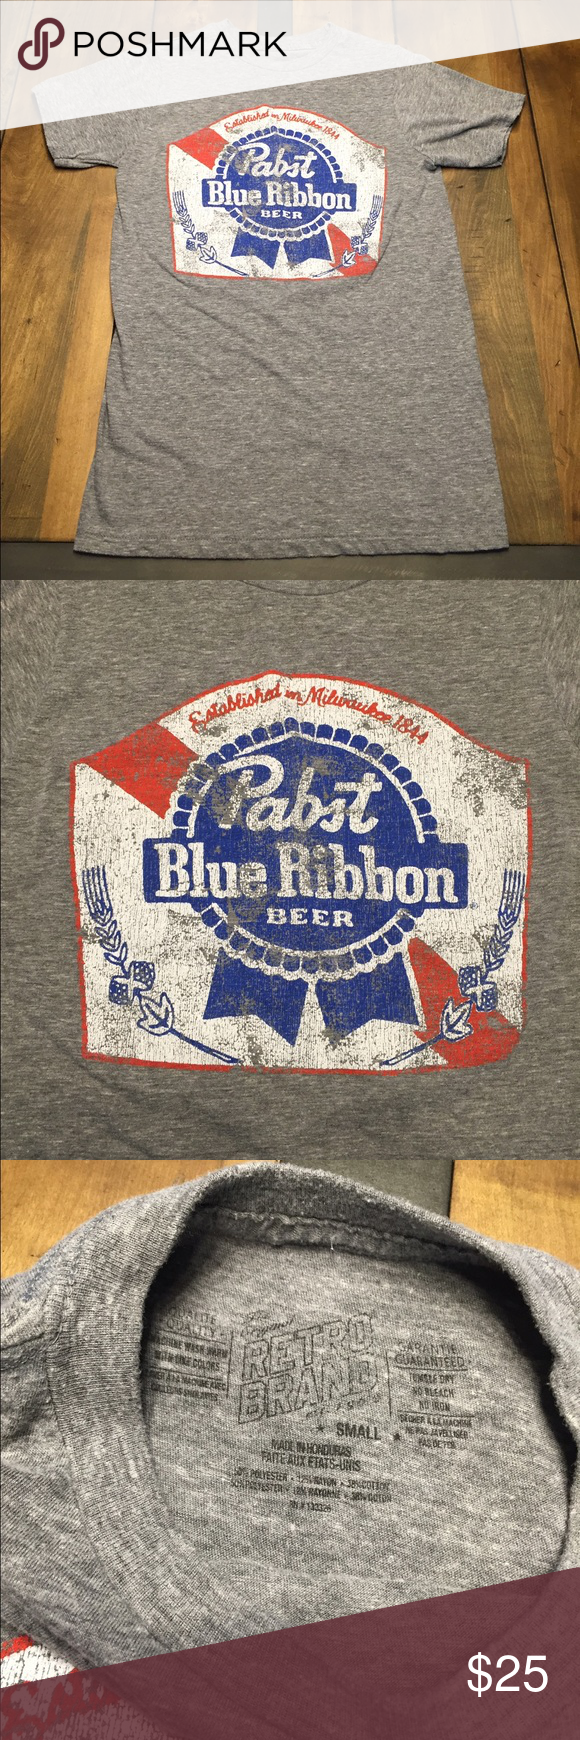 f855f0bd32a Pabst T-shirt Pabst blue ribbon beer tshirt. I bought this from urban  probably